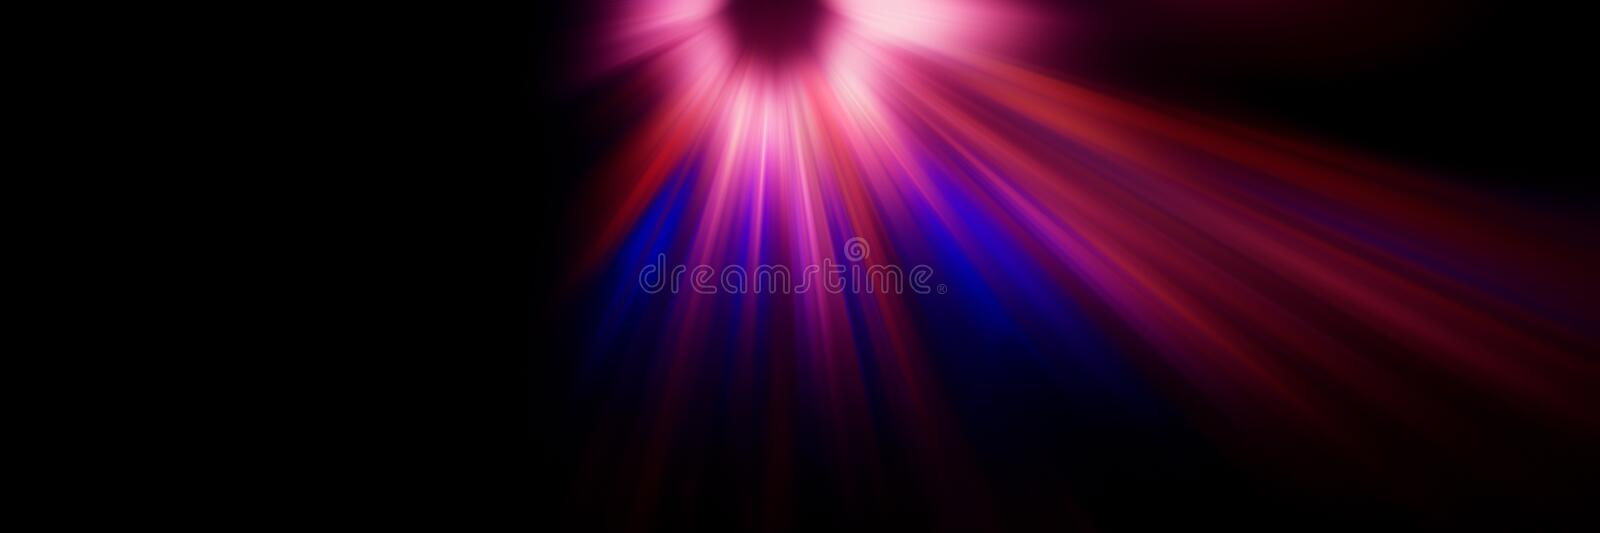 Abstract blurred background, violet flash and descending radial light rays of red, white and blue on a dark background stock illustration